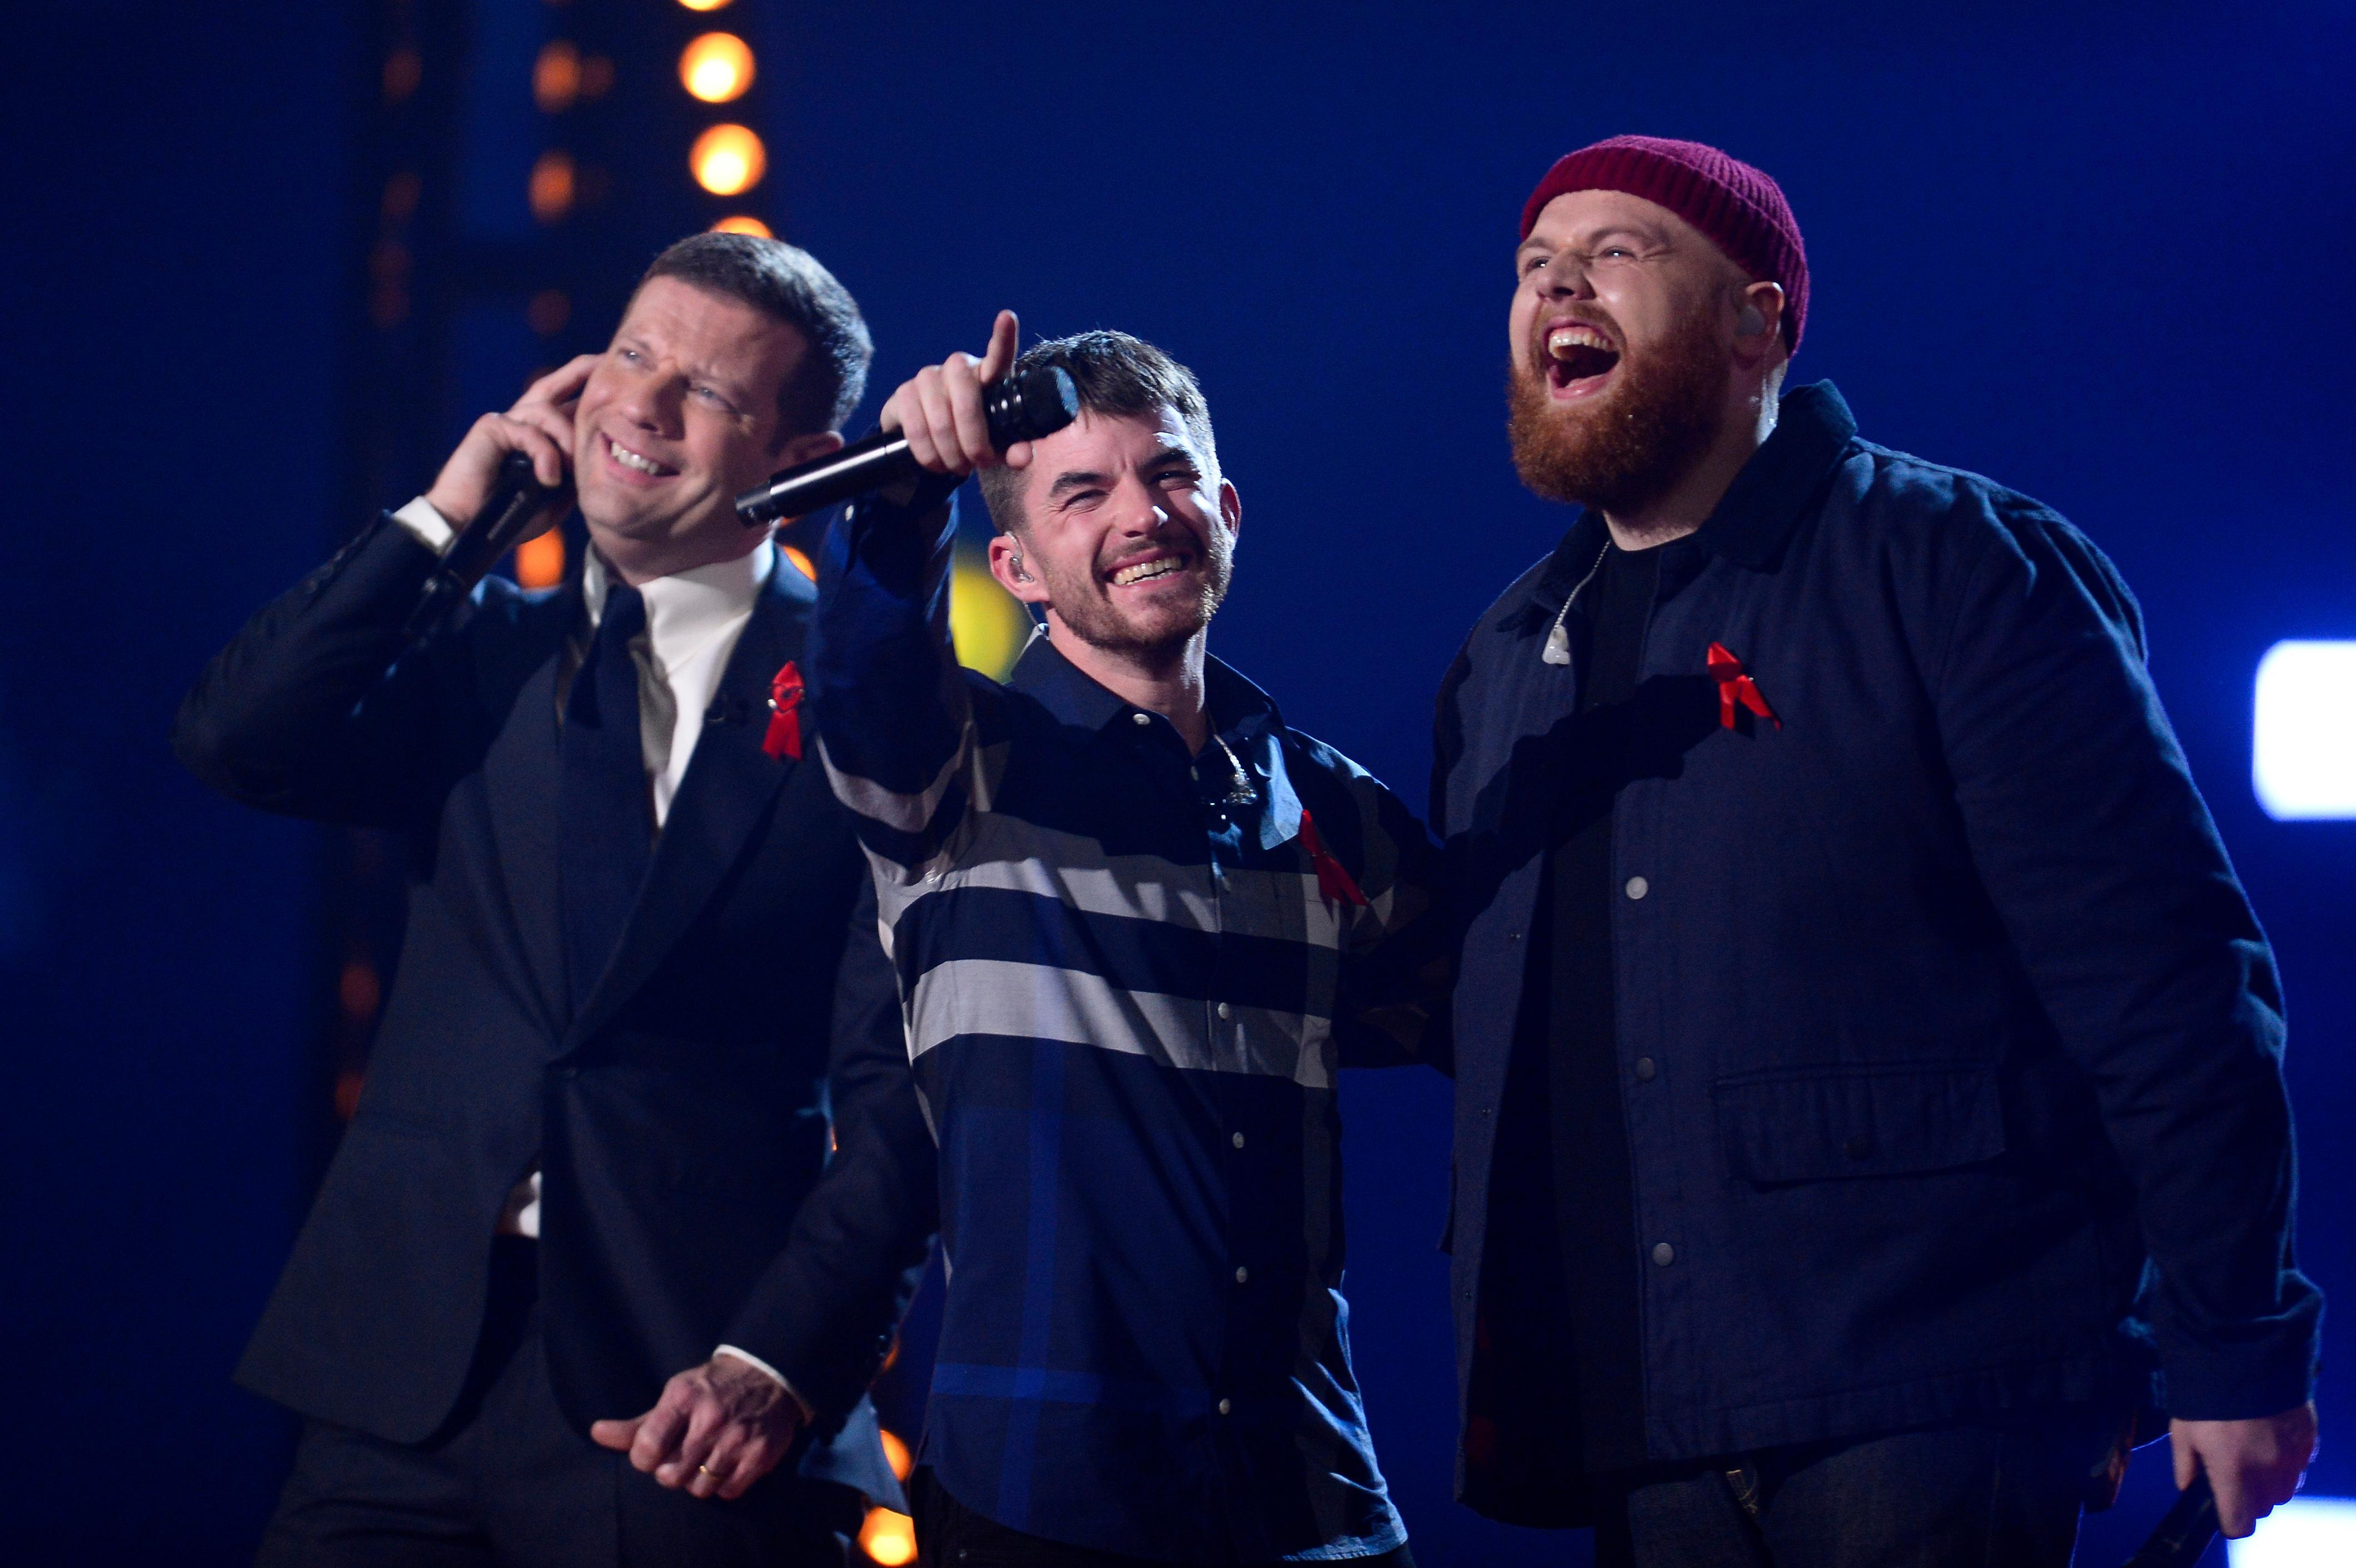 X Factor fans confused as Dermot O'Leary tells Anthony Russell he's trending on Twitter – but he wasn't